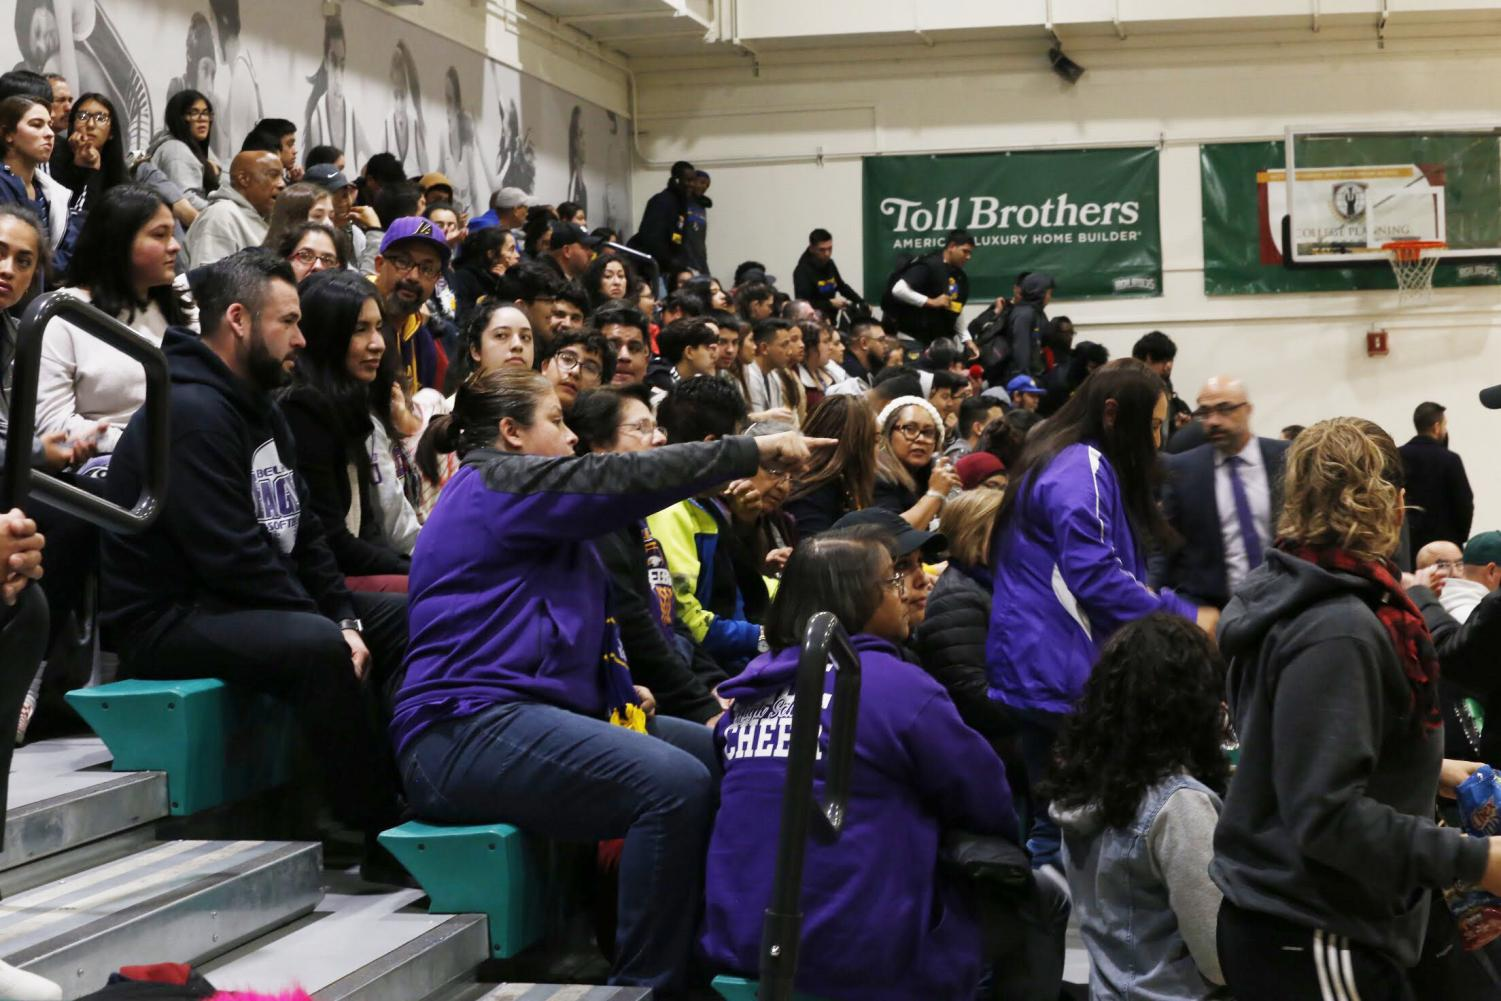 Many+Bell+High+School+teachers%2C+administration%2C+and+students+make+the+journey+out+to+Granada+Hills+on+a+Thursday+night+to+support+the+Girls+Basketball+Team+in+their+championship+game